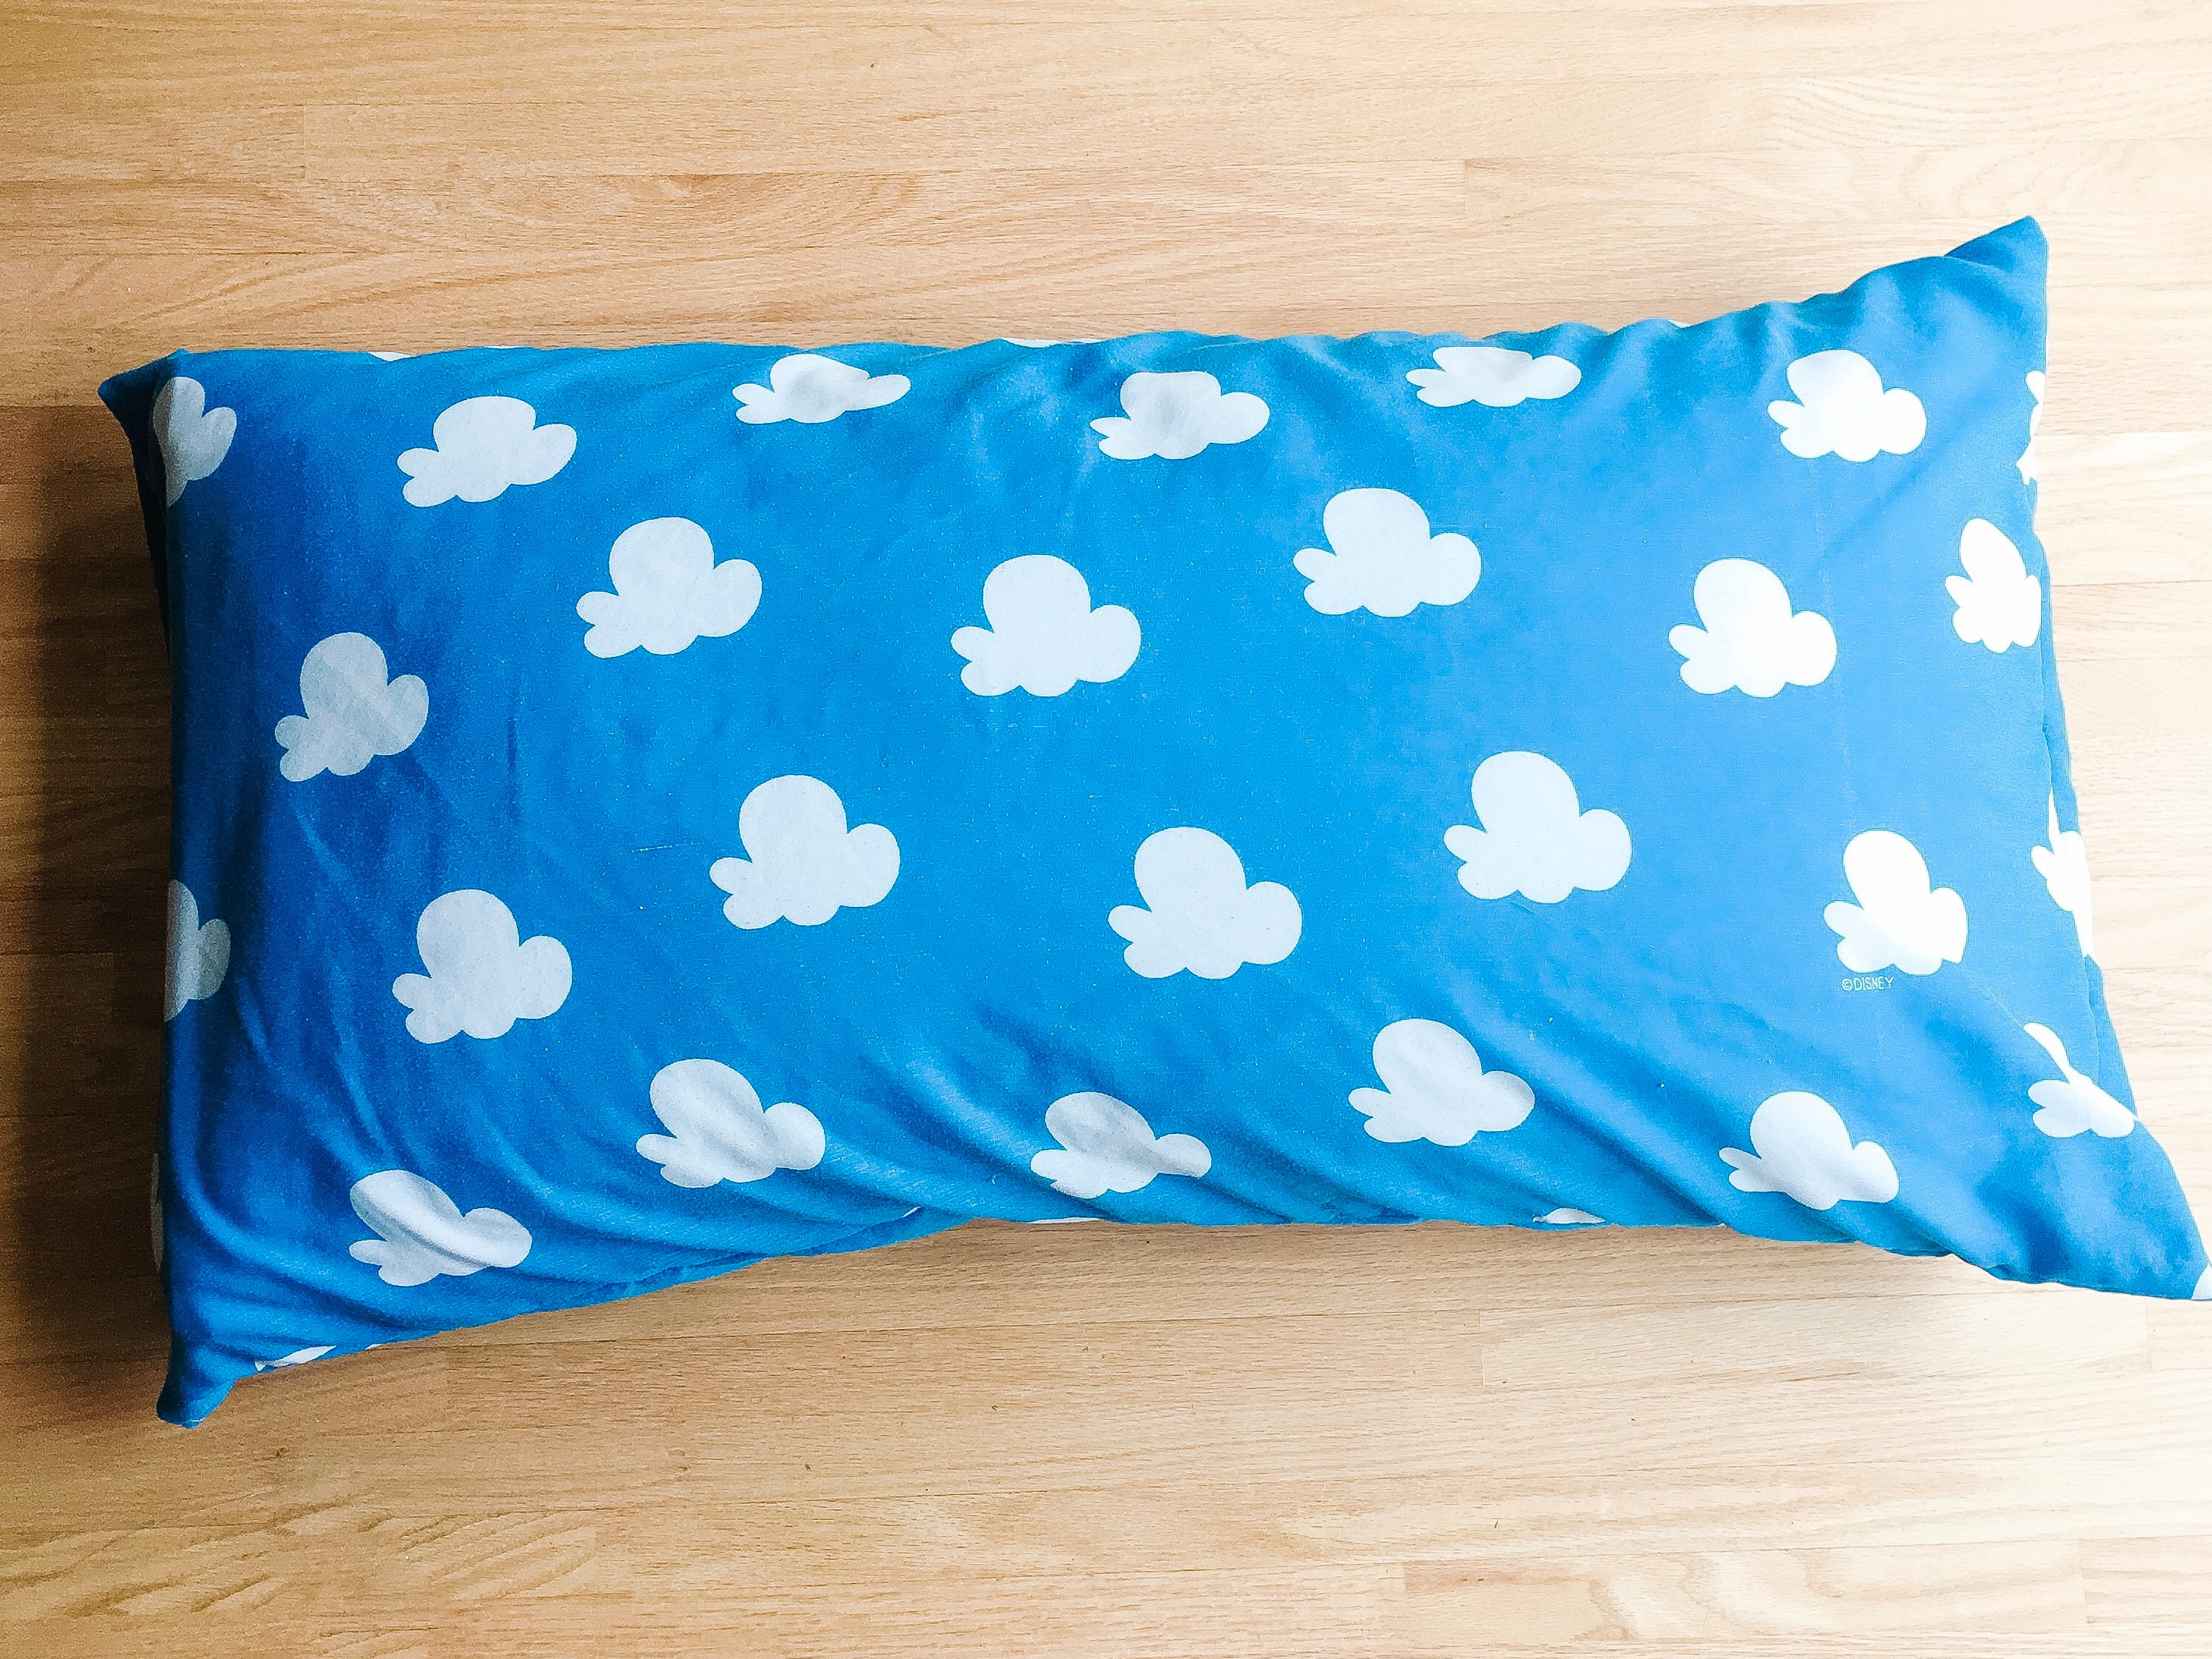 How To Sew An Easy Envelope Pillowcase Out Of Old Sheets Making Things Is Awesome